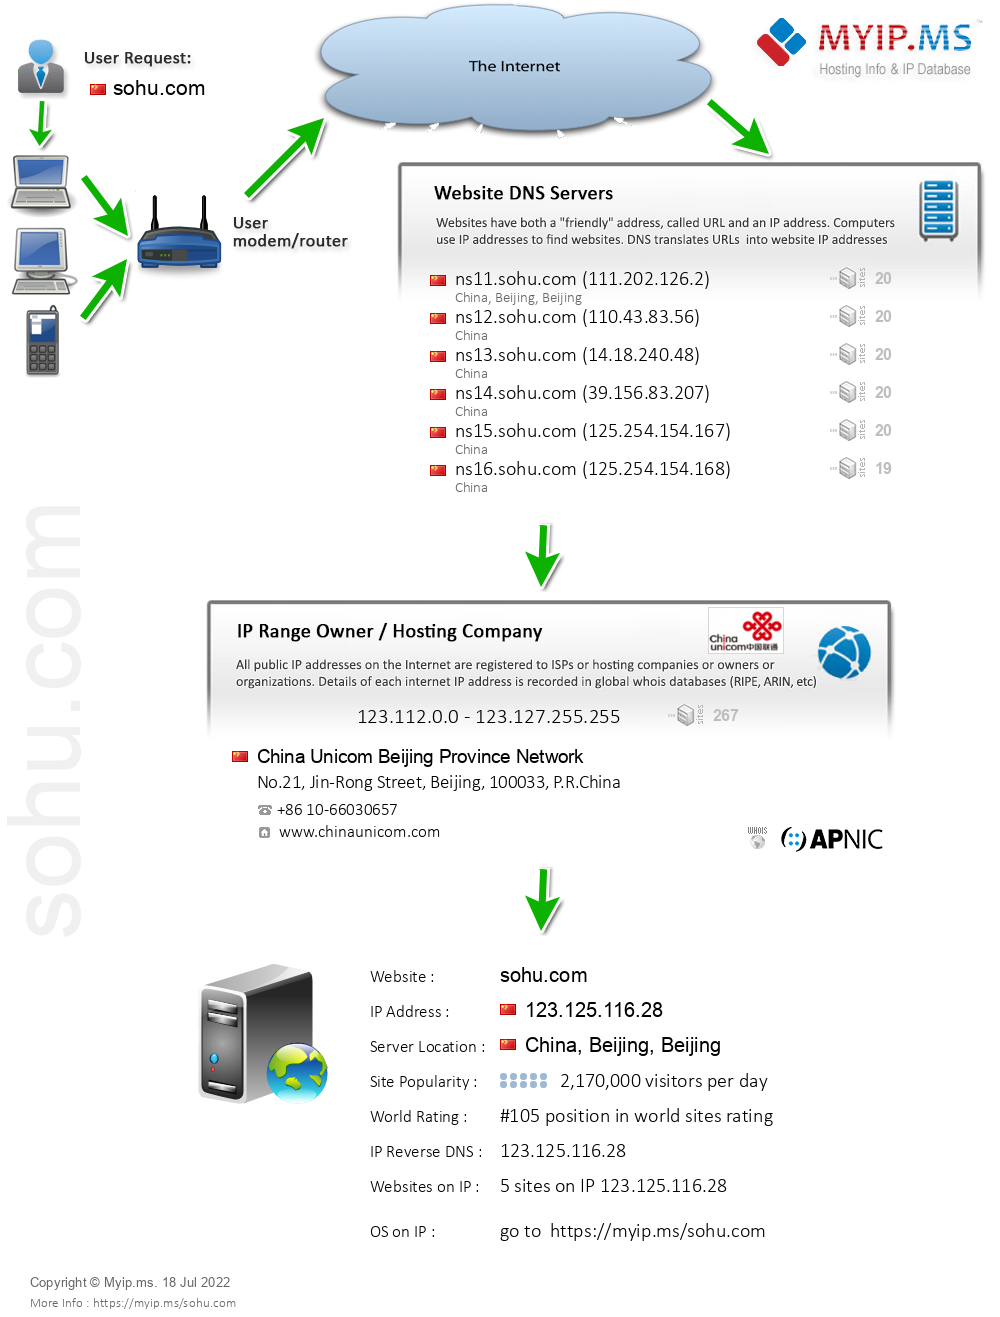 Sohu.com - Website Hosting Visual IP Diagram